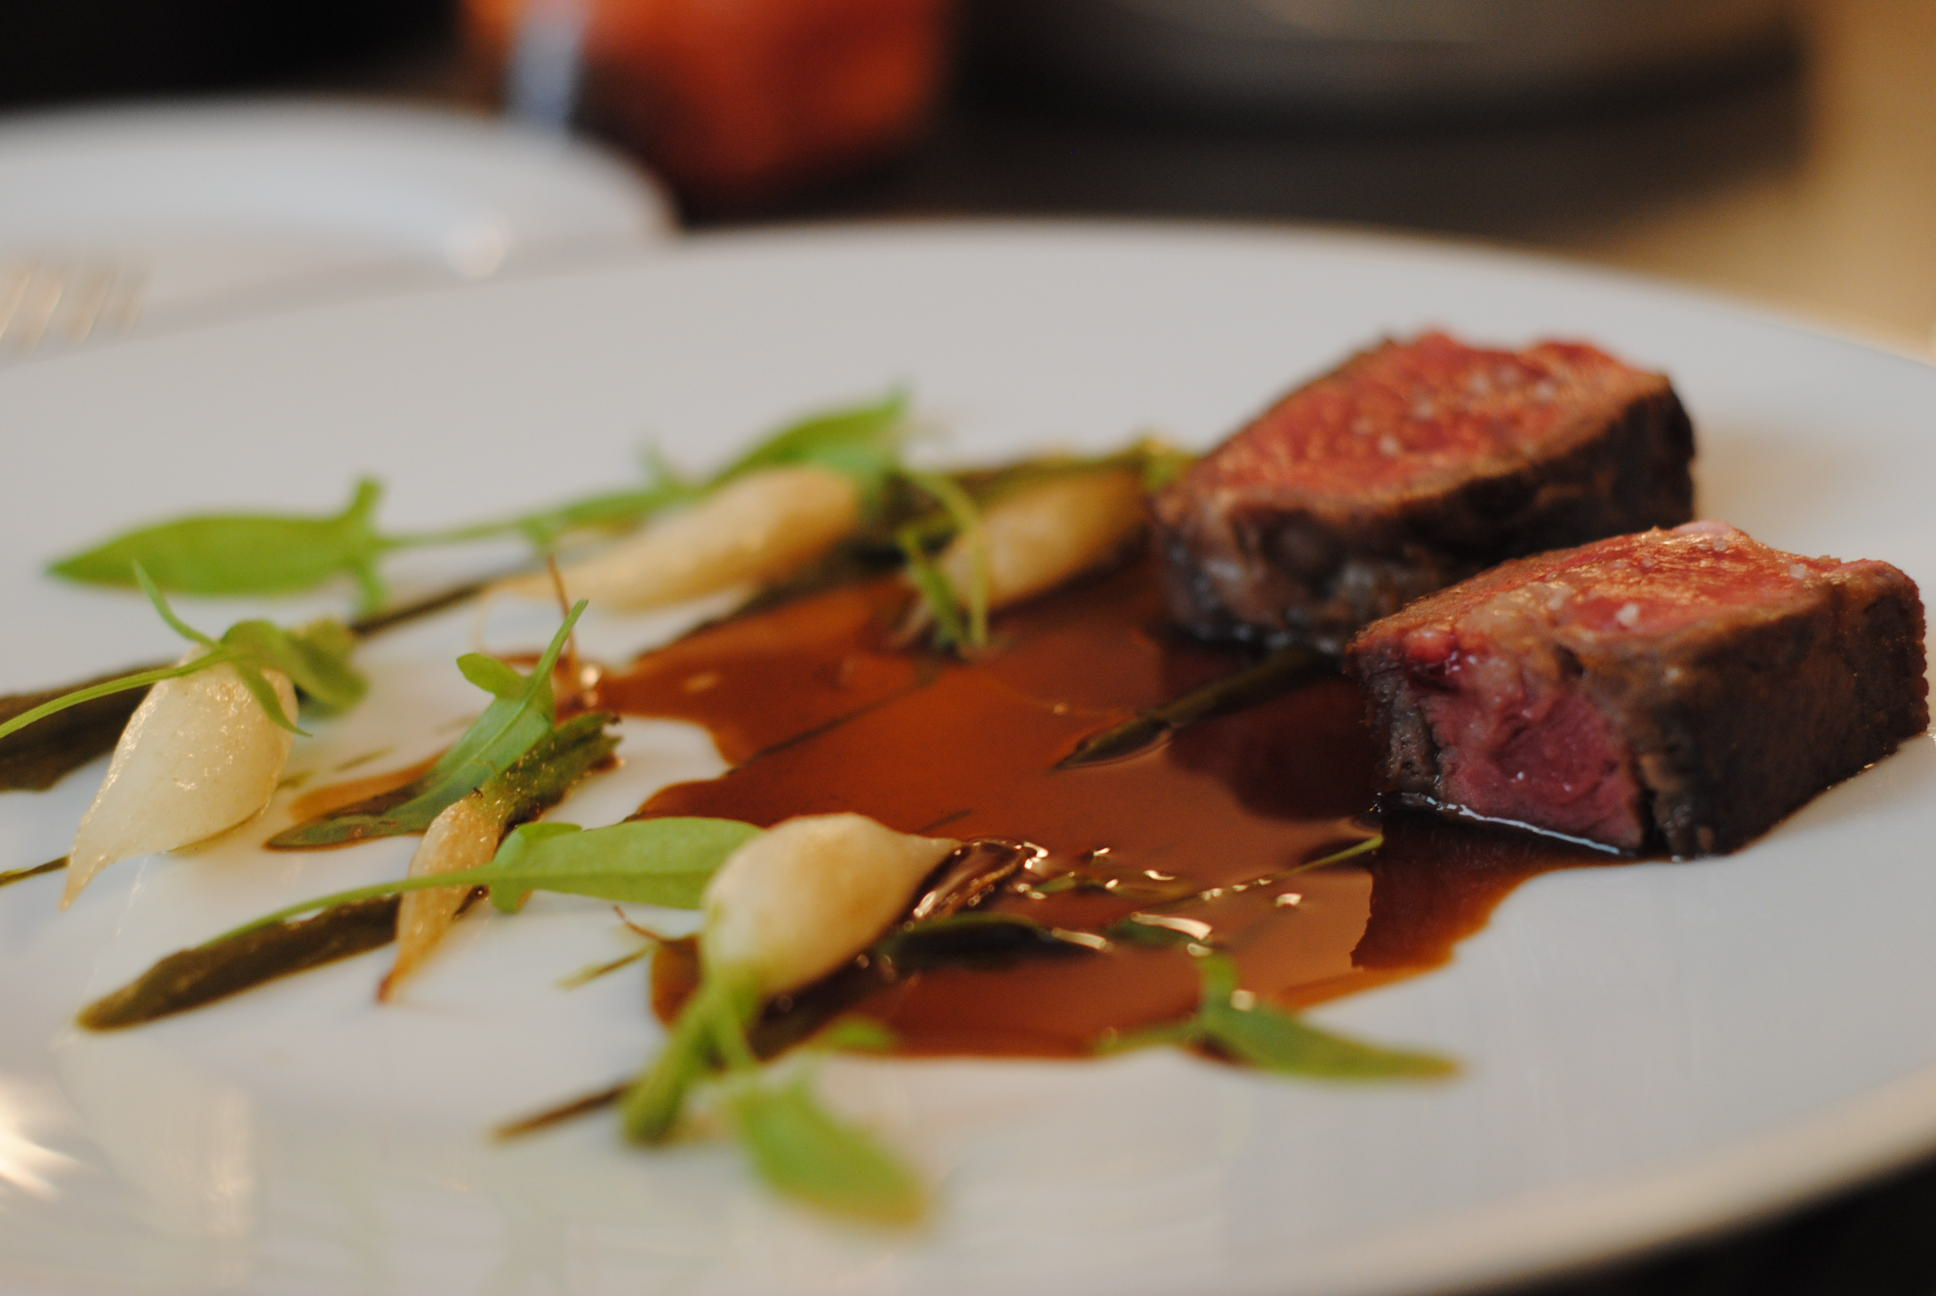 aged-beef-paris-fine-dining-where-to-eat